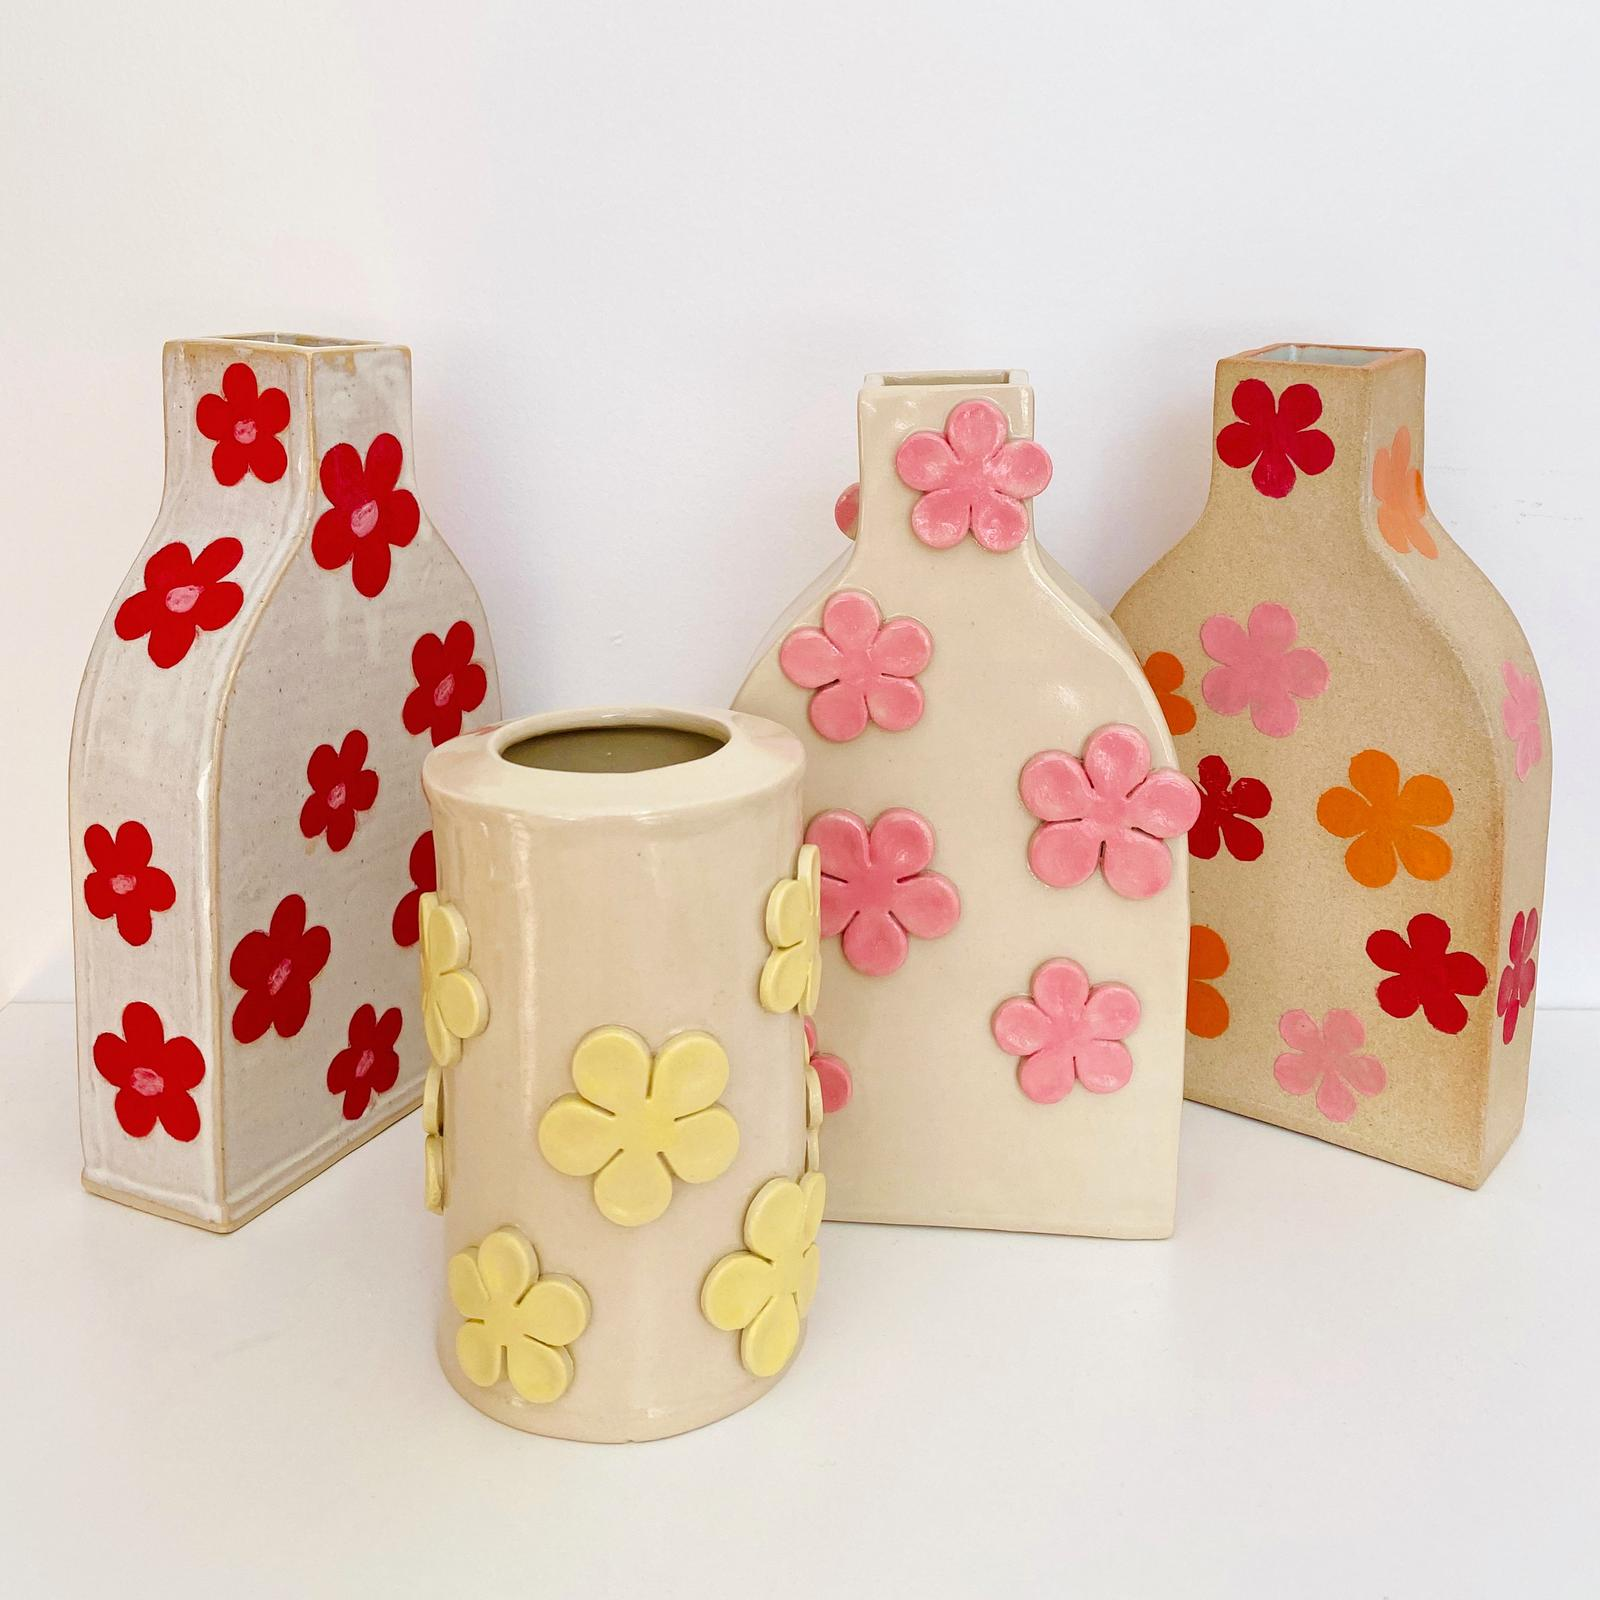 Assortment of vases with 3D flowers and motifs